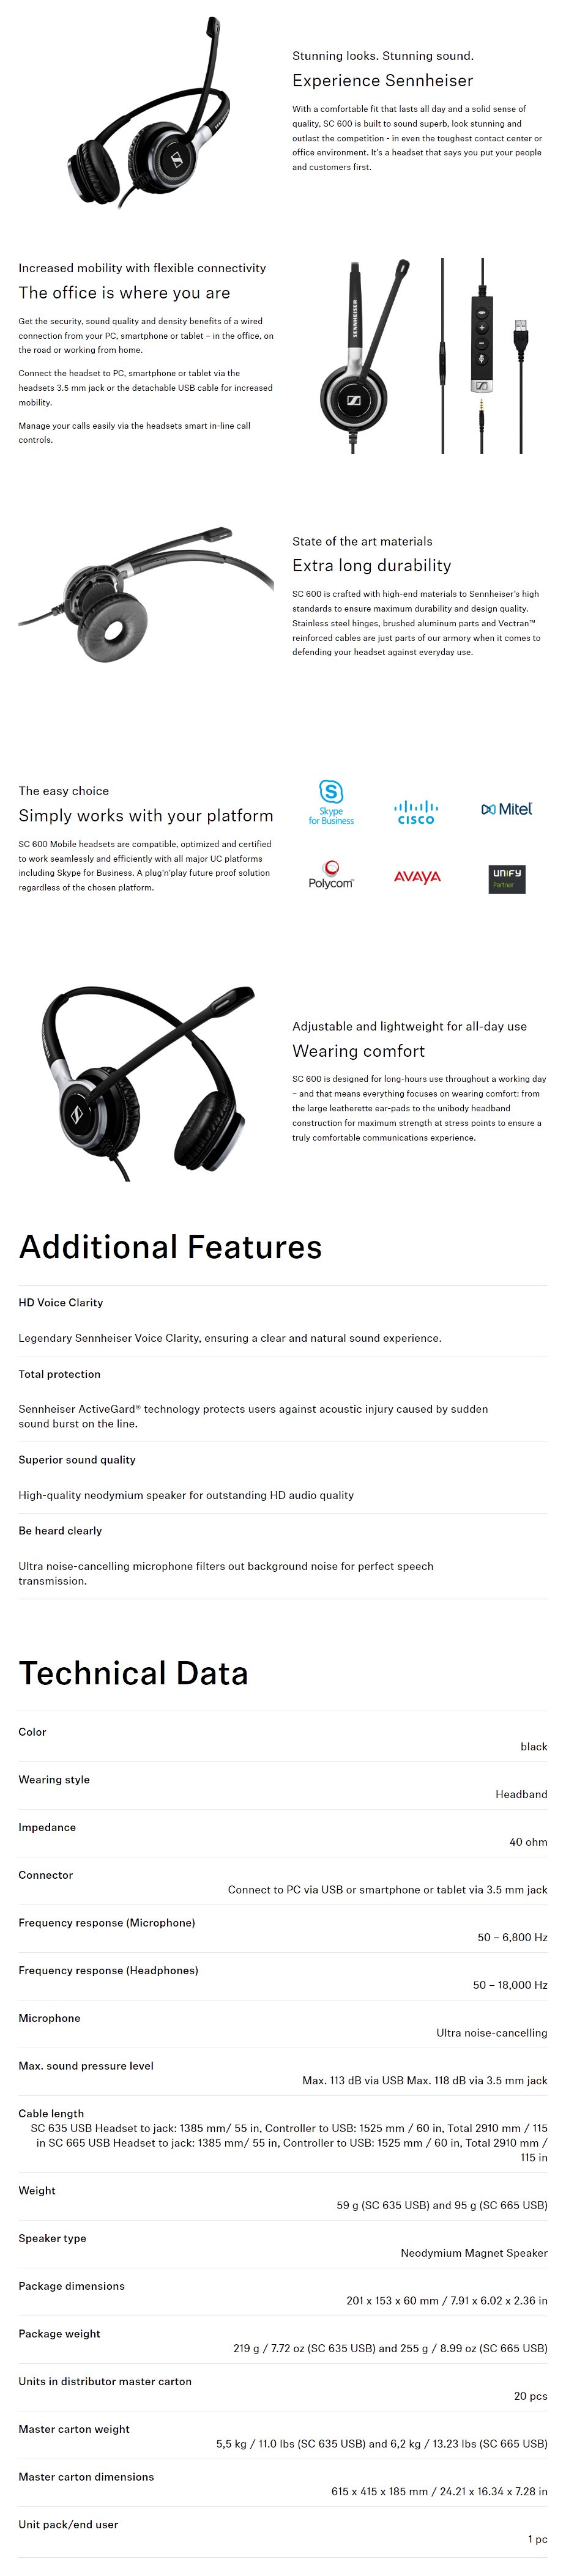 Sennheiser SC 665 USB Headset - Overview 1